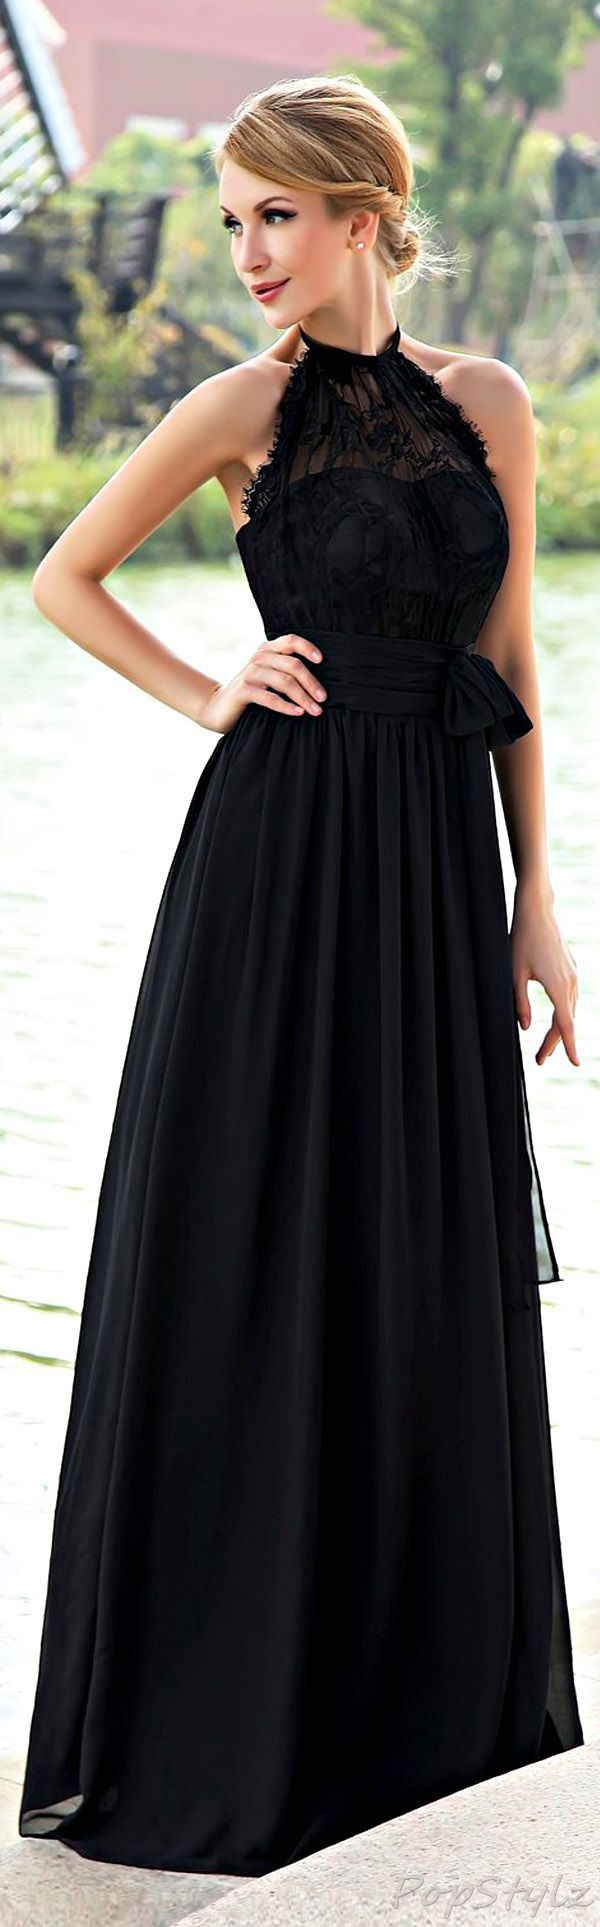 artonsun fashion dress me pinterest chiffon gown